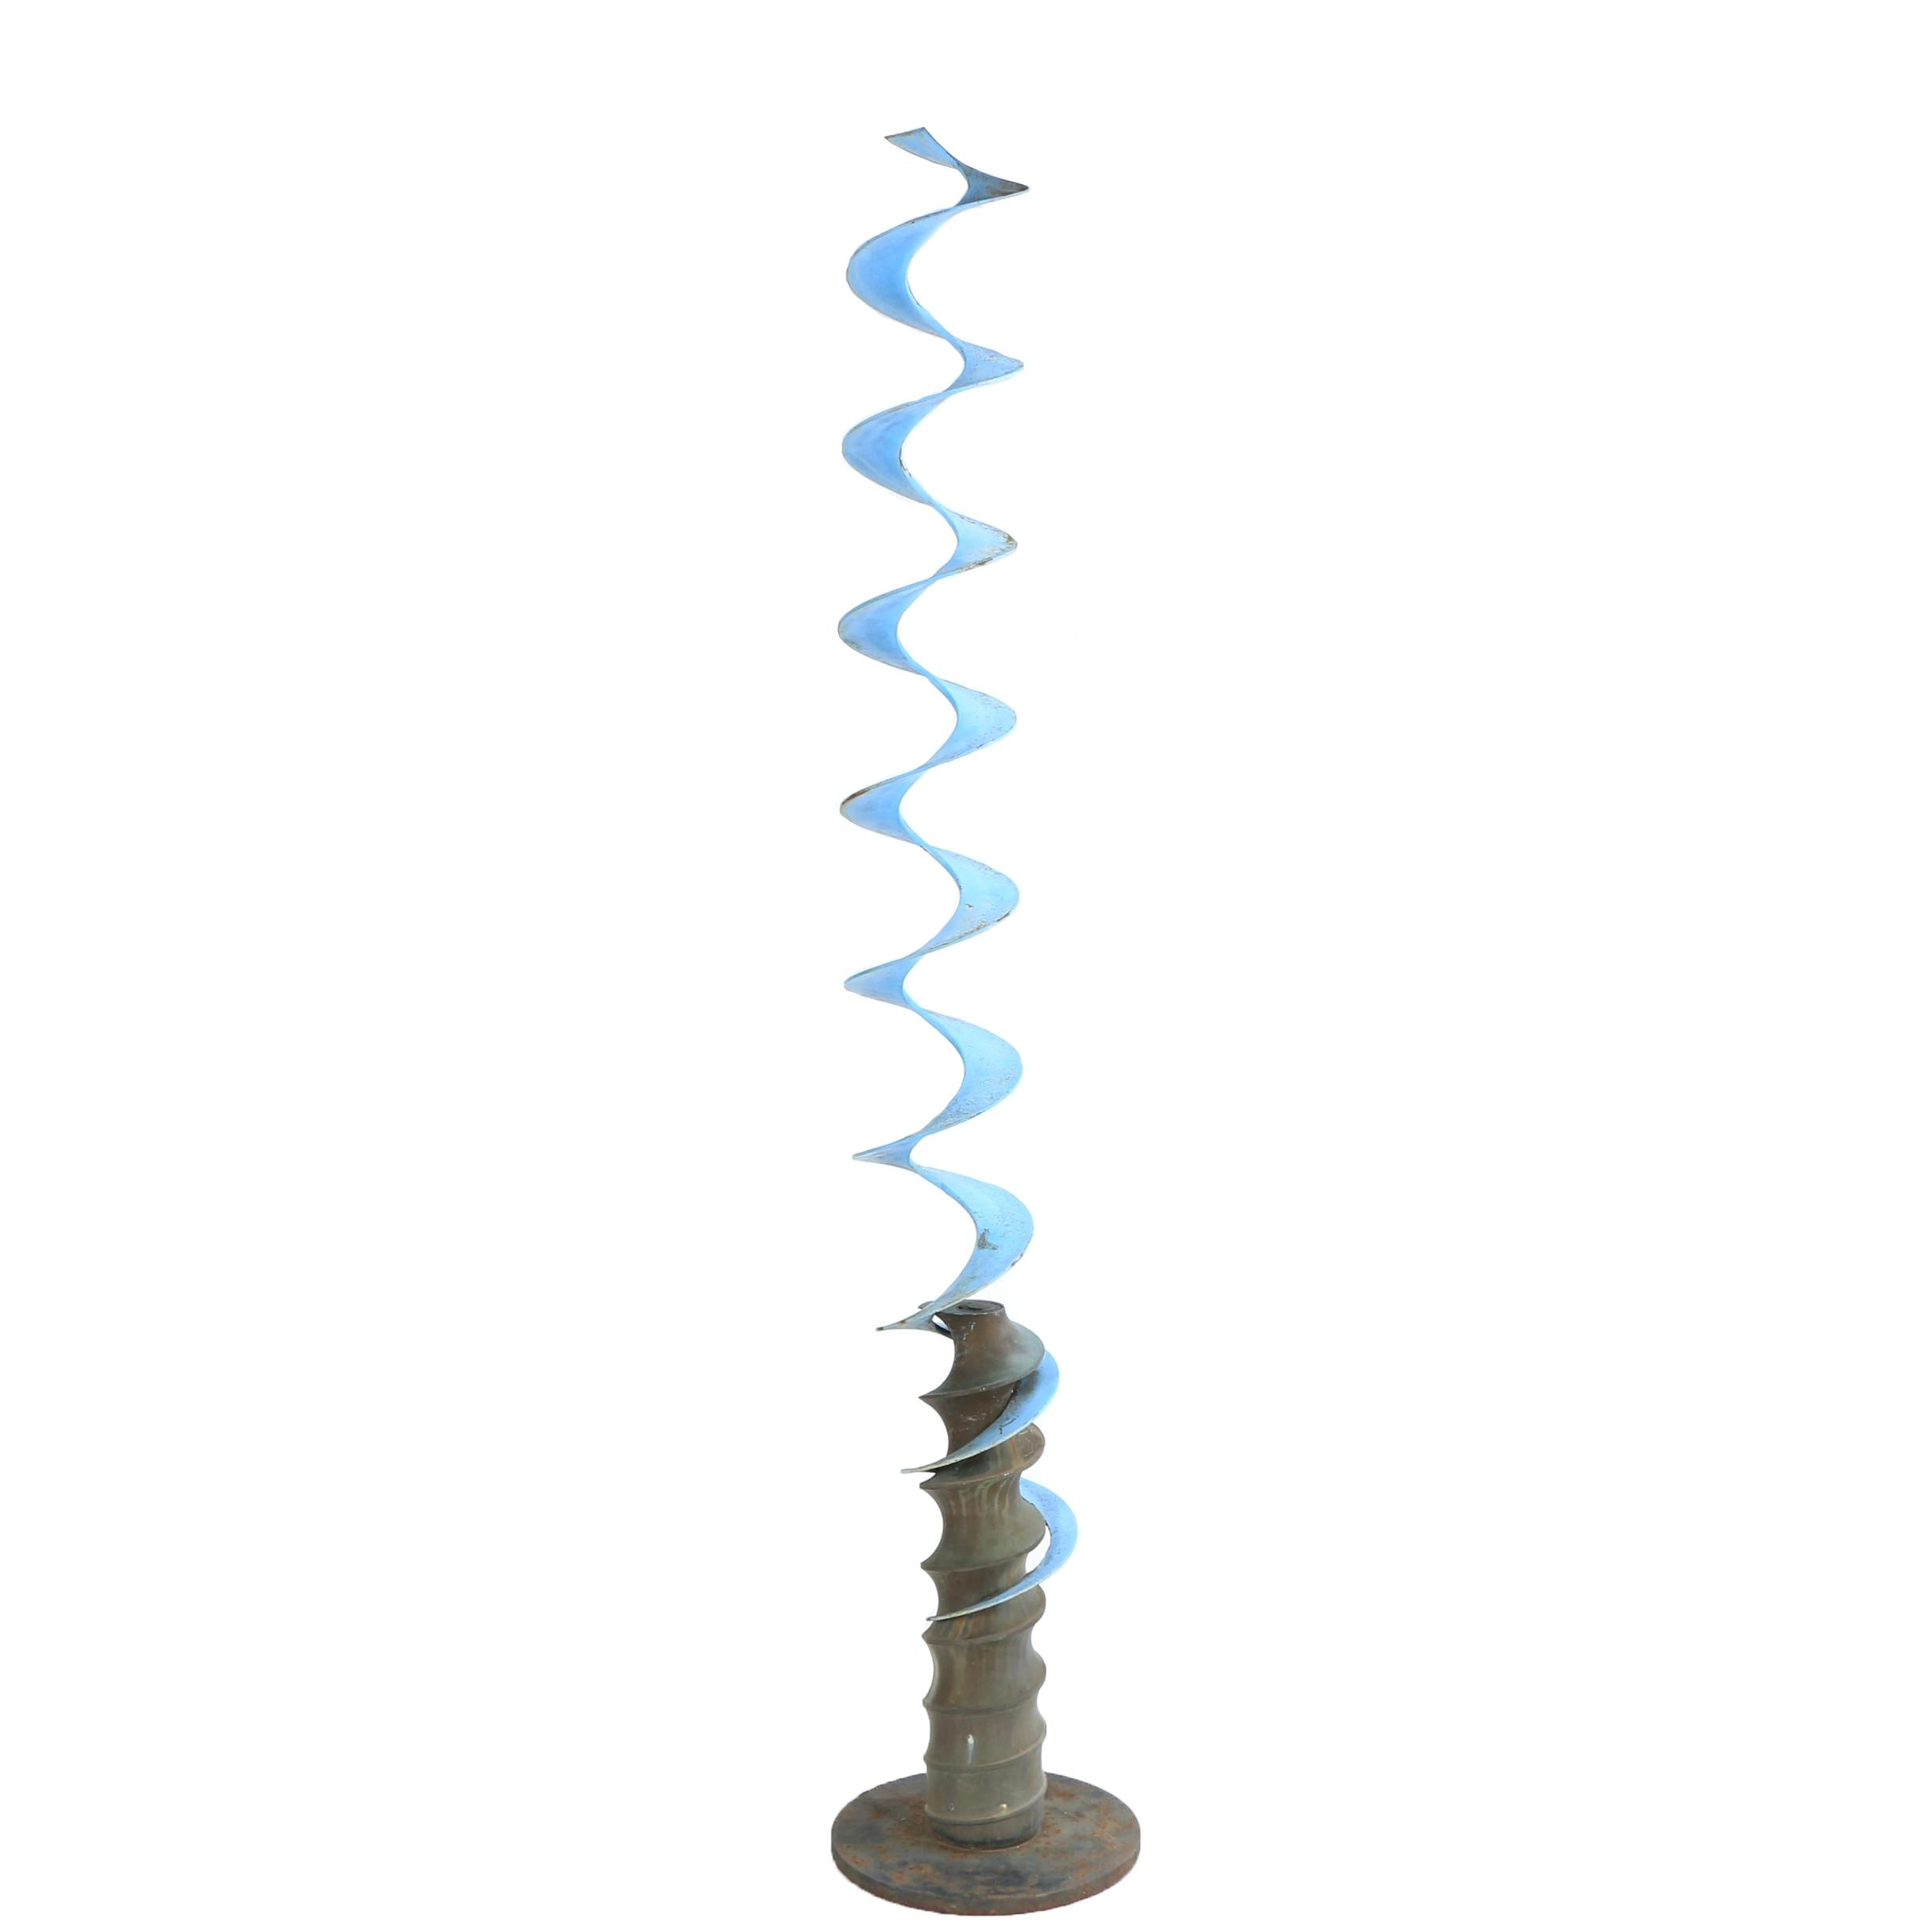 Modernist Vertical Free Standing Blue Screw Metal Sculpture